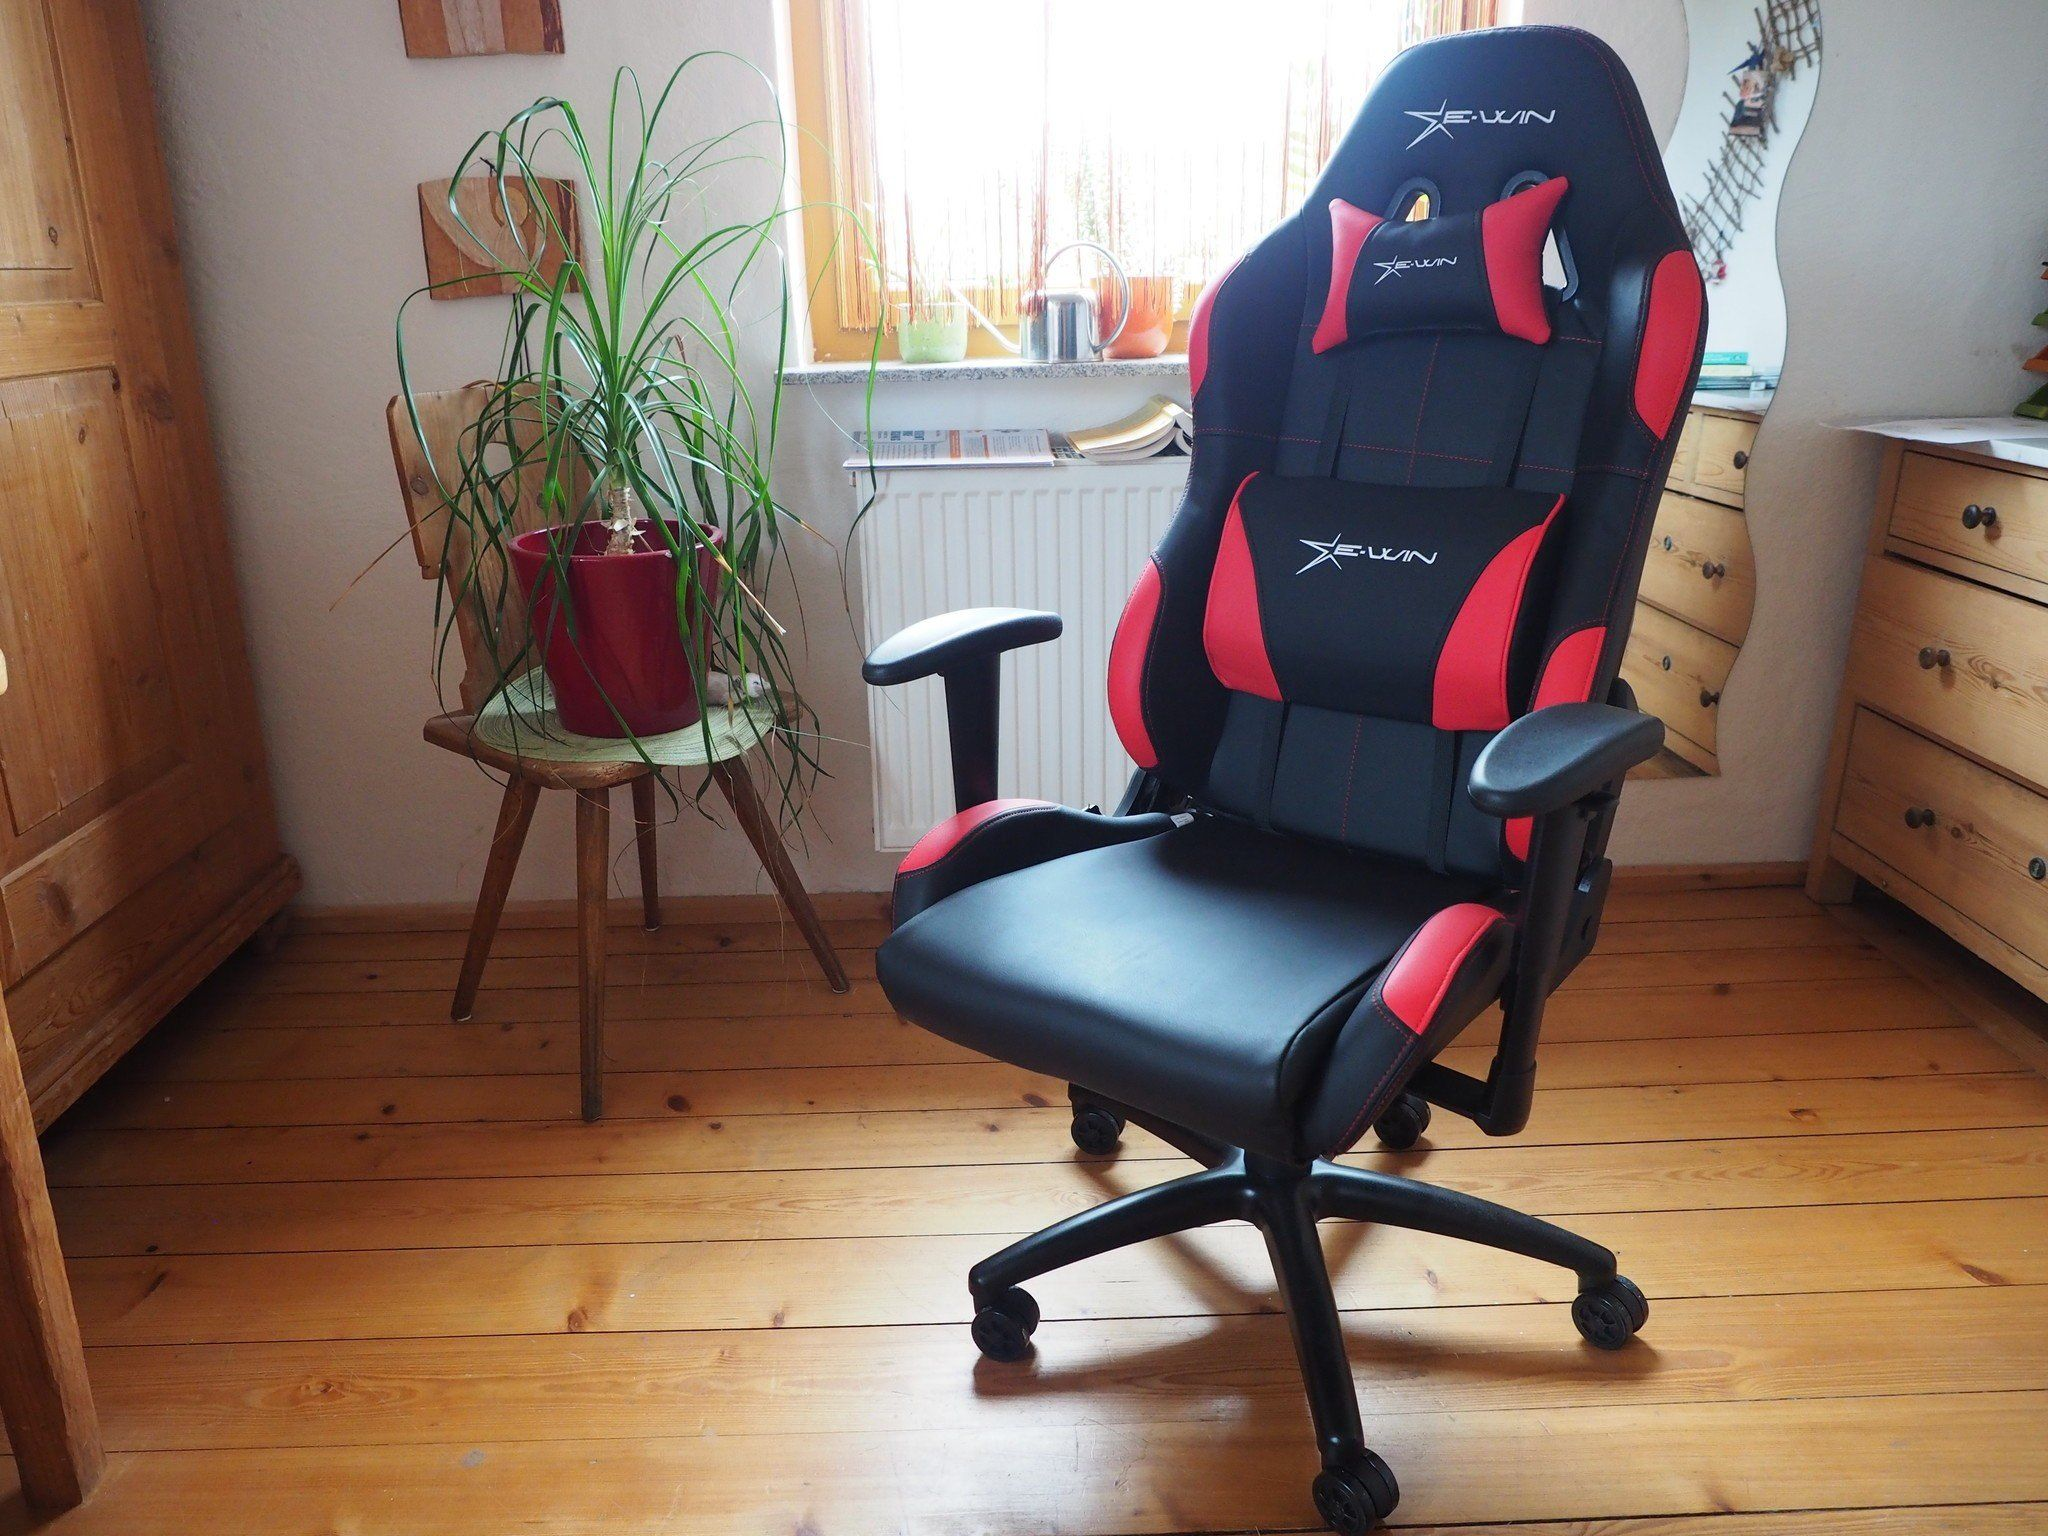 E-Win Racing Gaming Chair review: Your back's new best friend